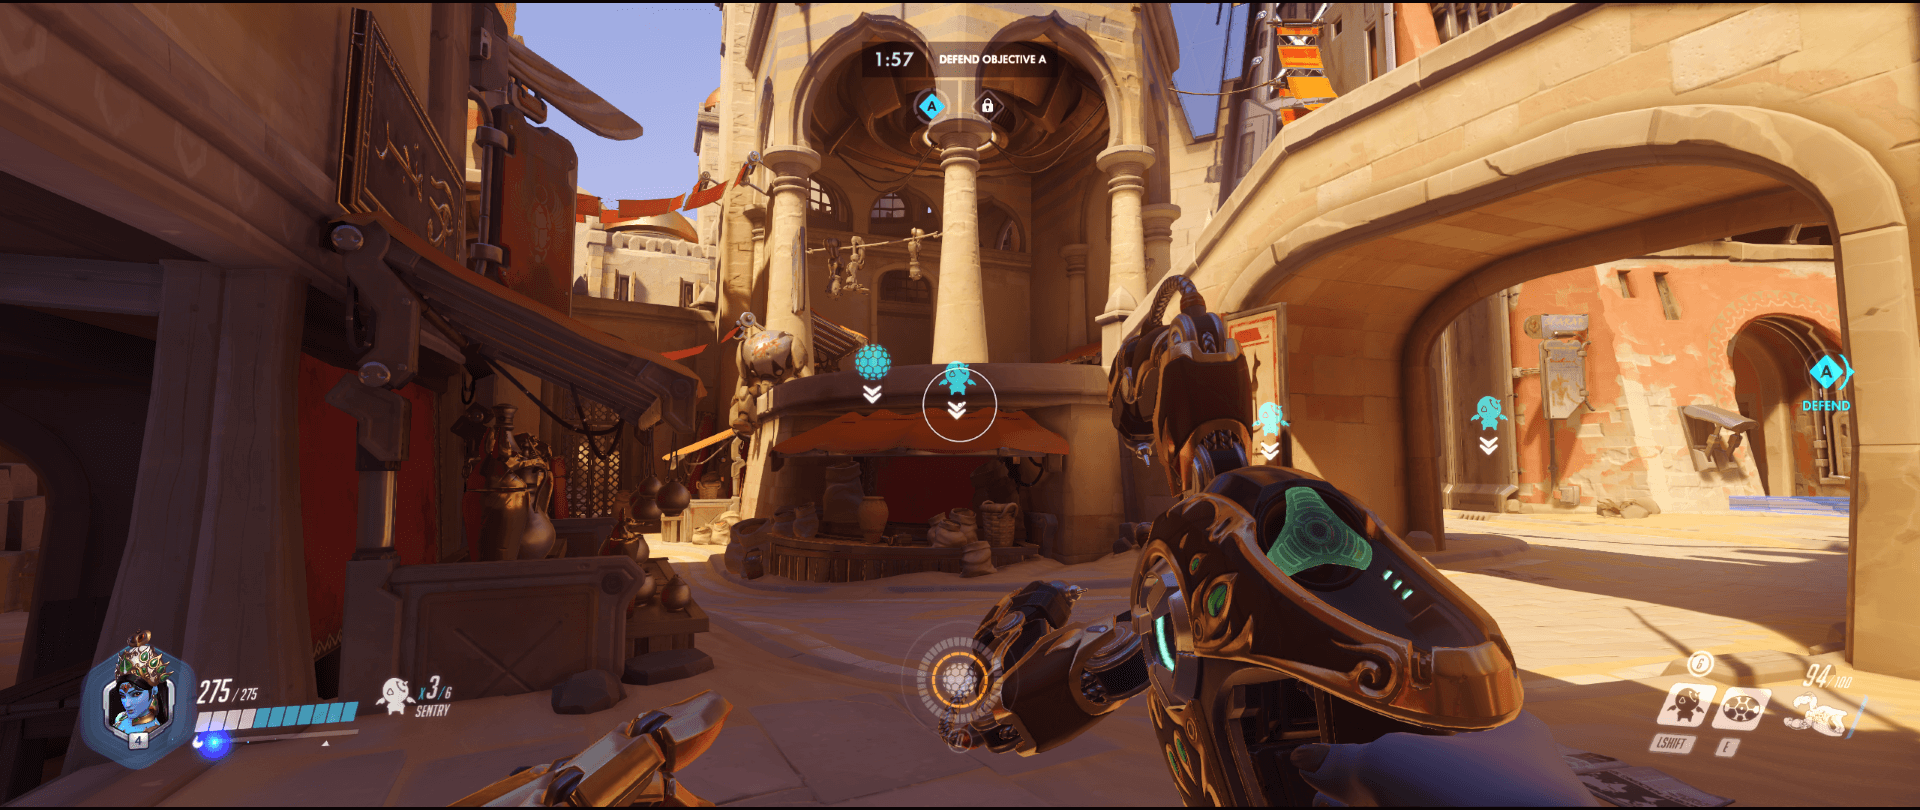 Symmetra shield generator spot Temple of Anubis main point one range 2.png